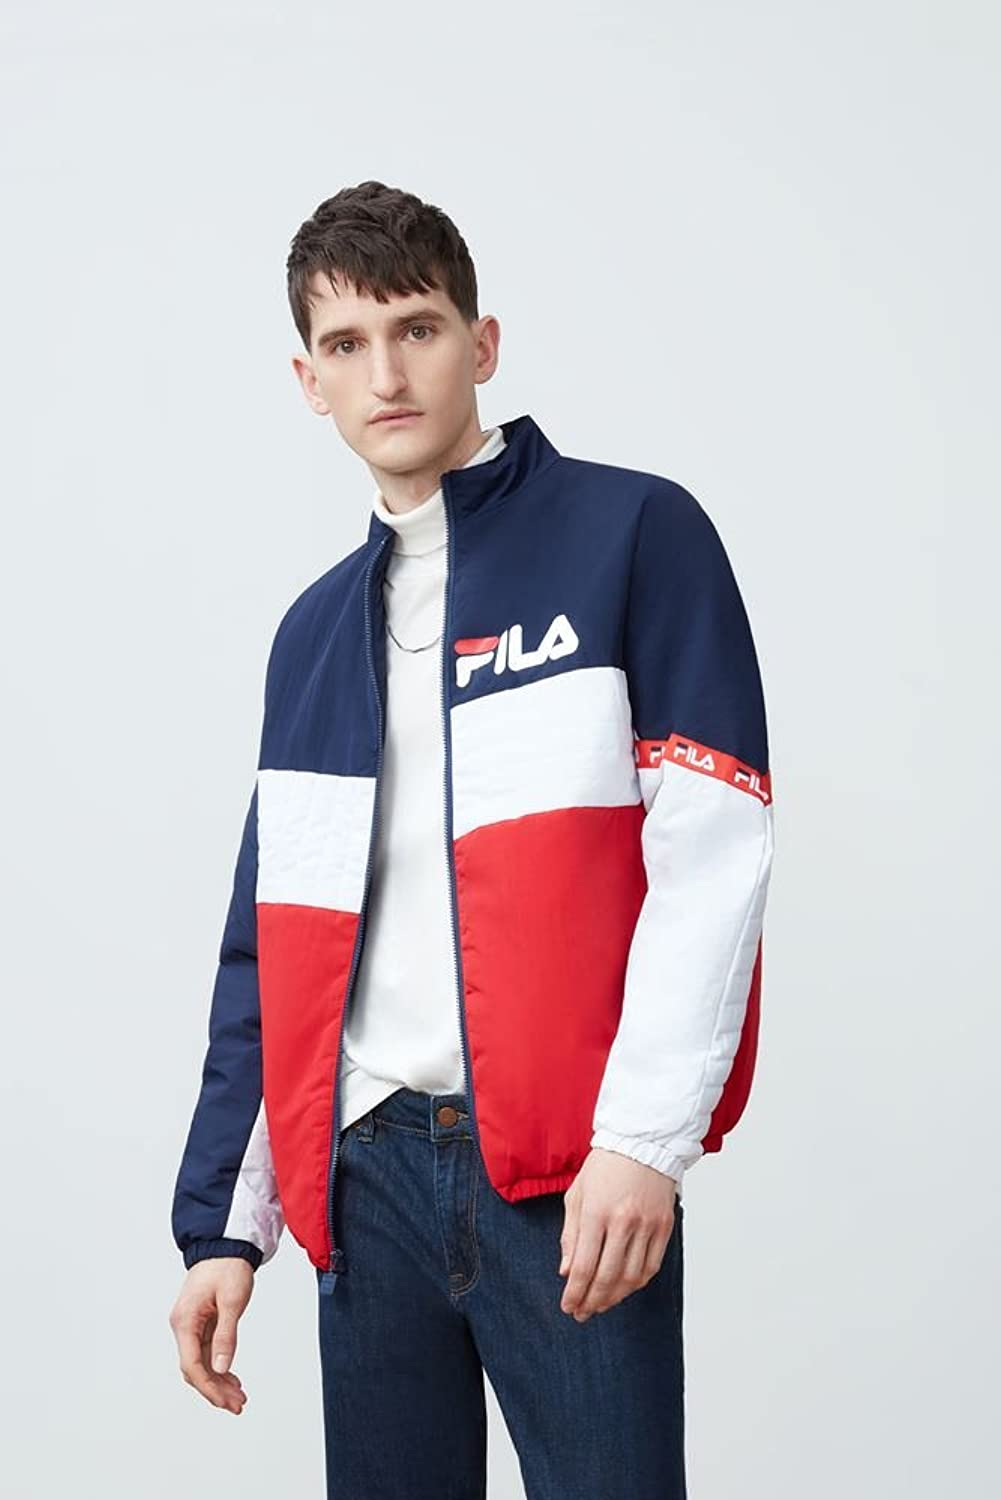 31c5fd2c2817c Fila Mens Jayden Full Zip Mens Jacket LM175V38 [5WarK0509130] - $36.99